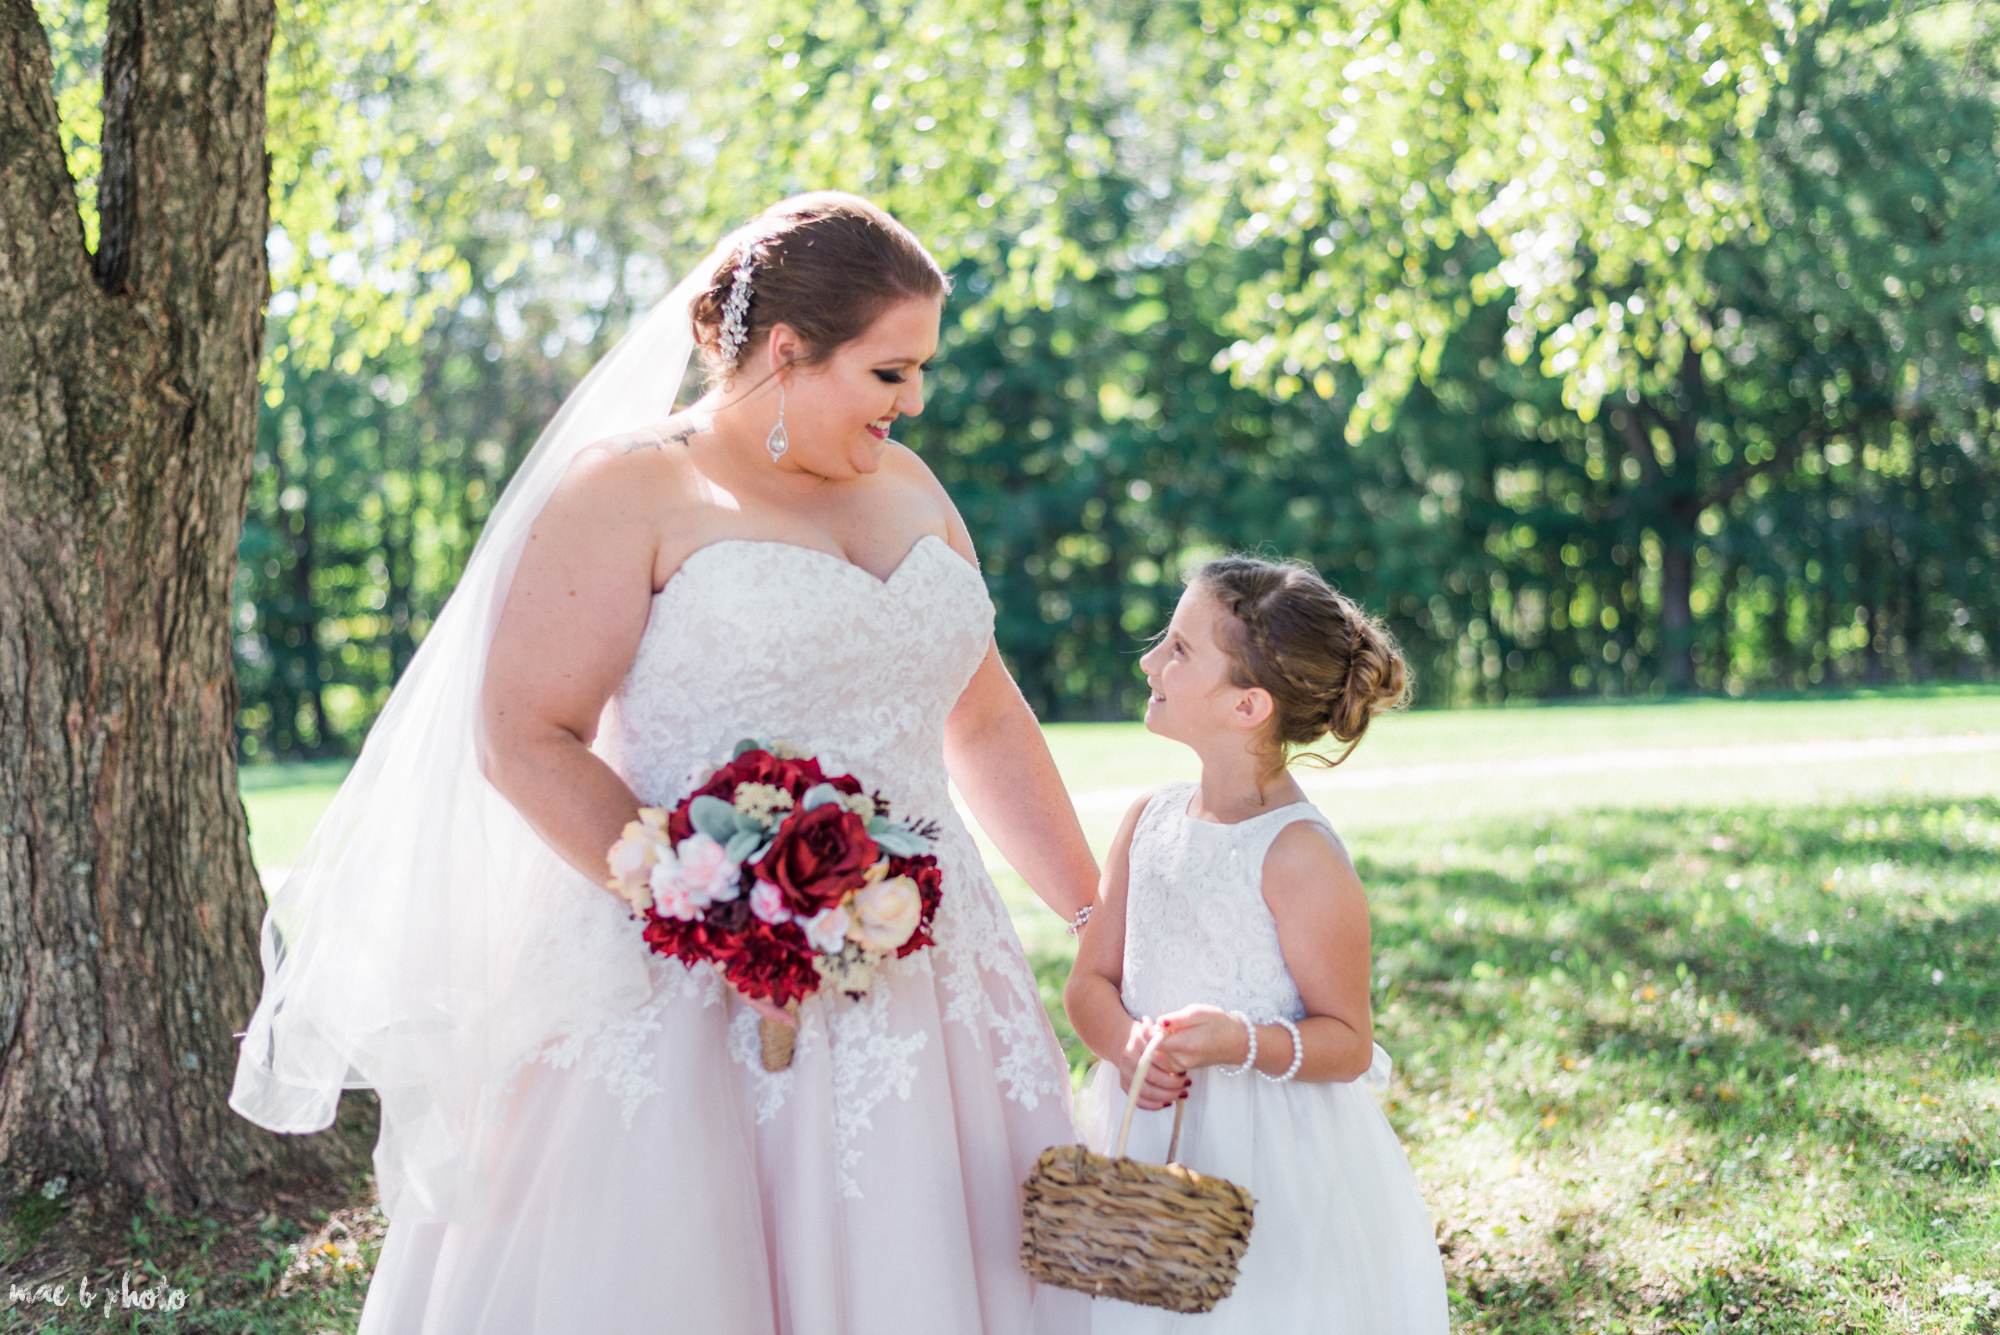 Amber & Kyle's Rustic Barn Wedding at SNPJ in Enon Valley, PA by Mae B Photo-49.jpg